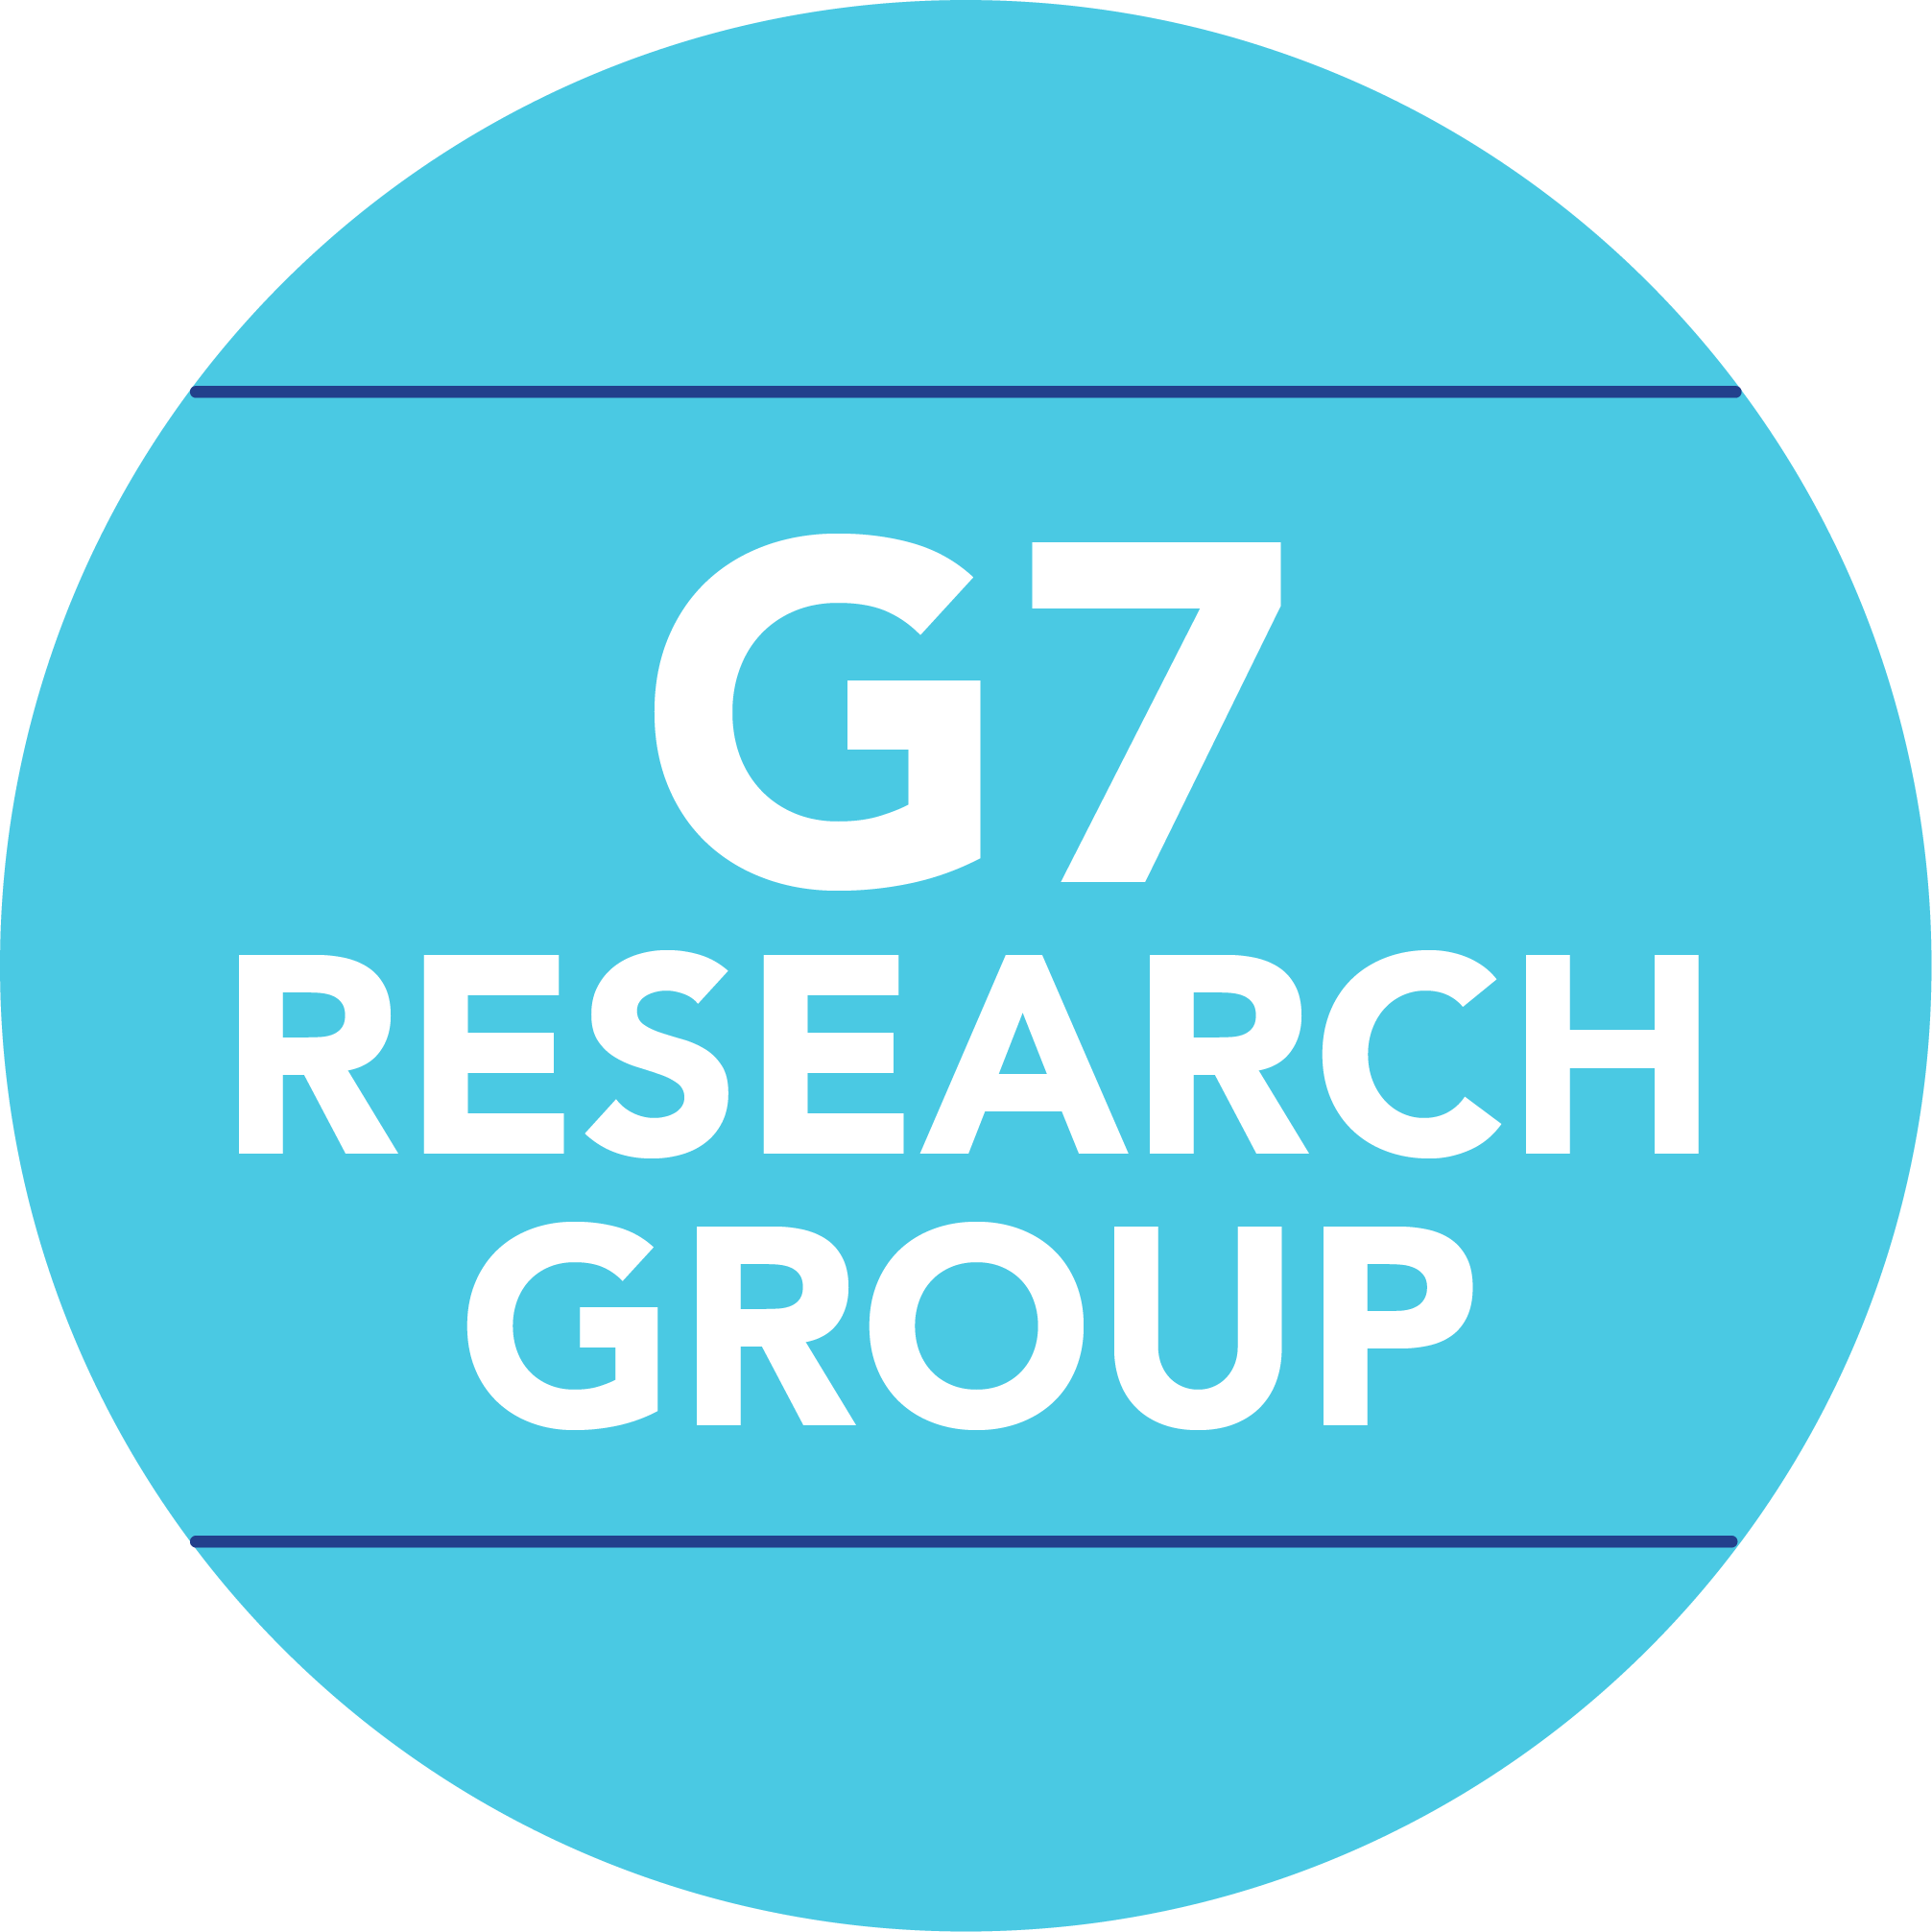 G7 Research Group